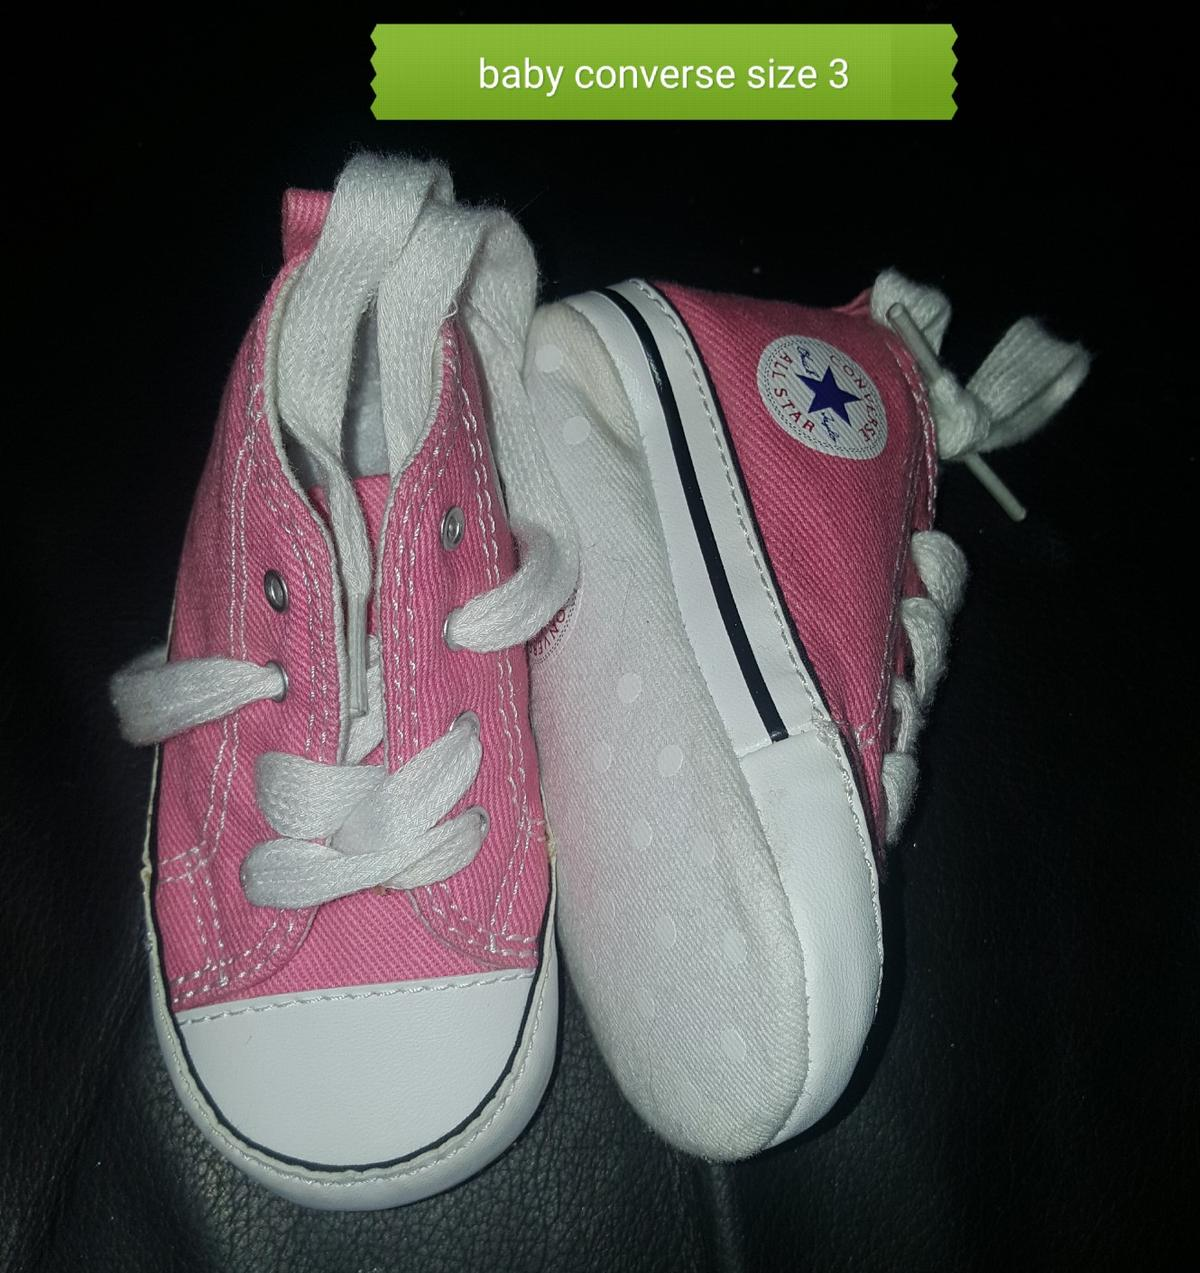 Baby White Converse Pram Shoes Baby Converse Size 3 Pram Shoes